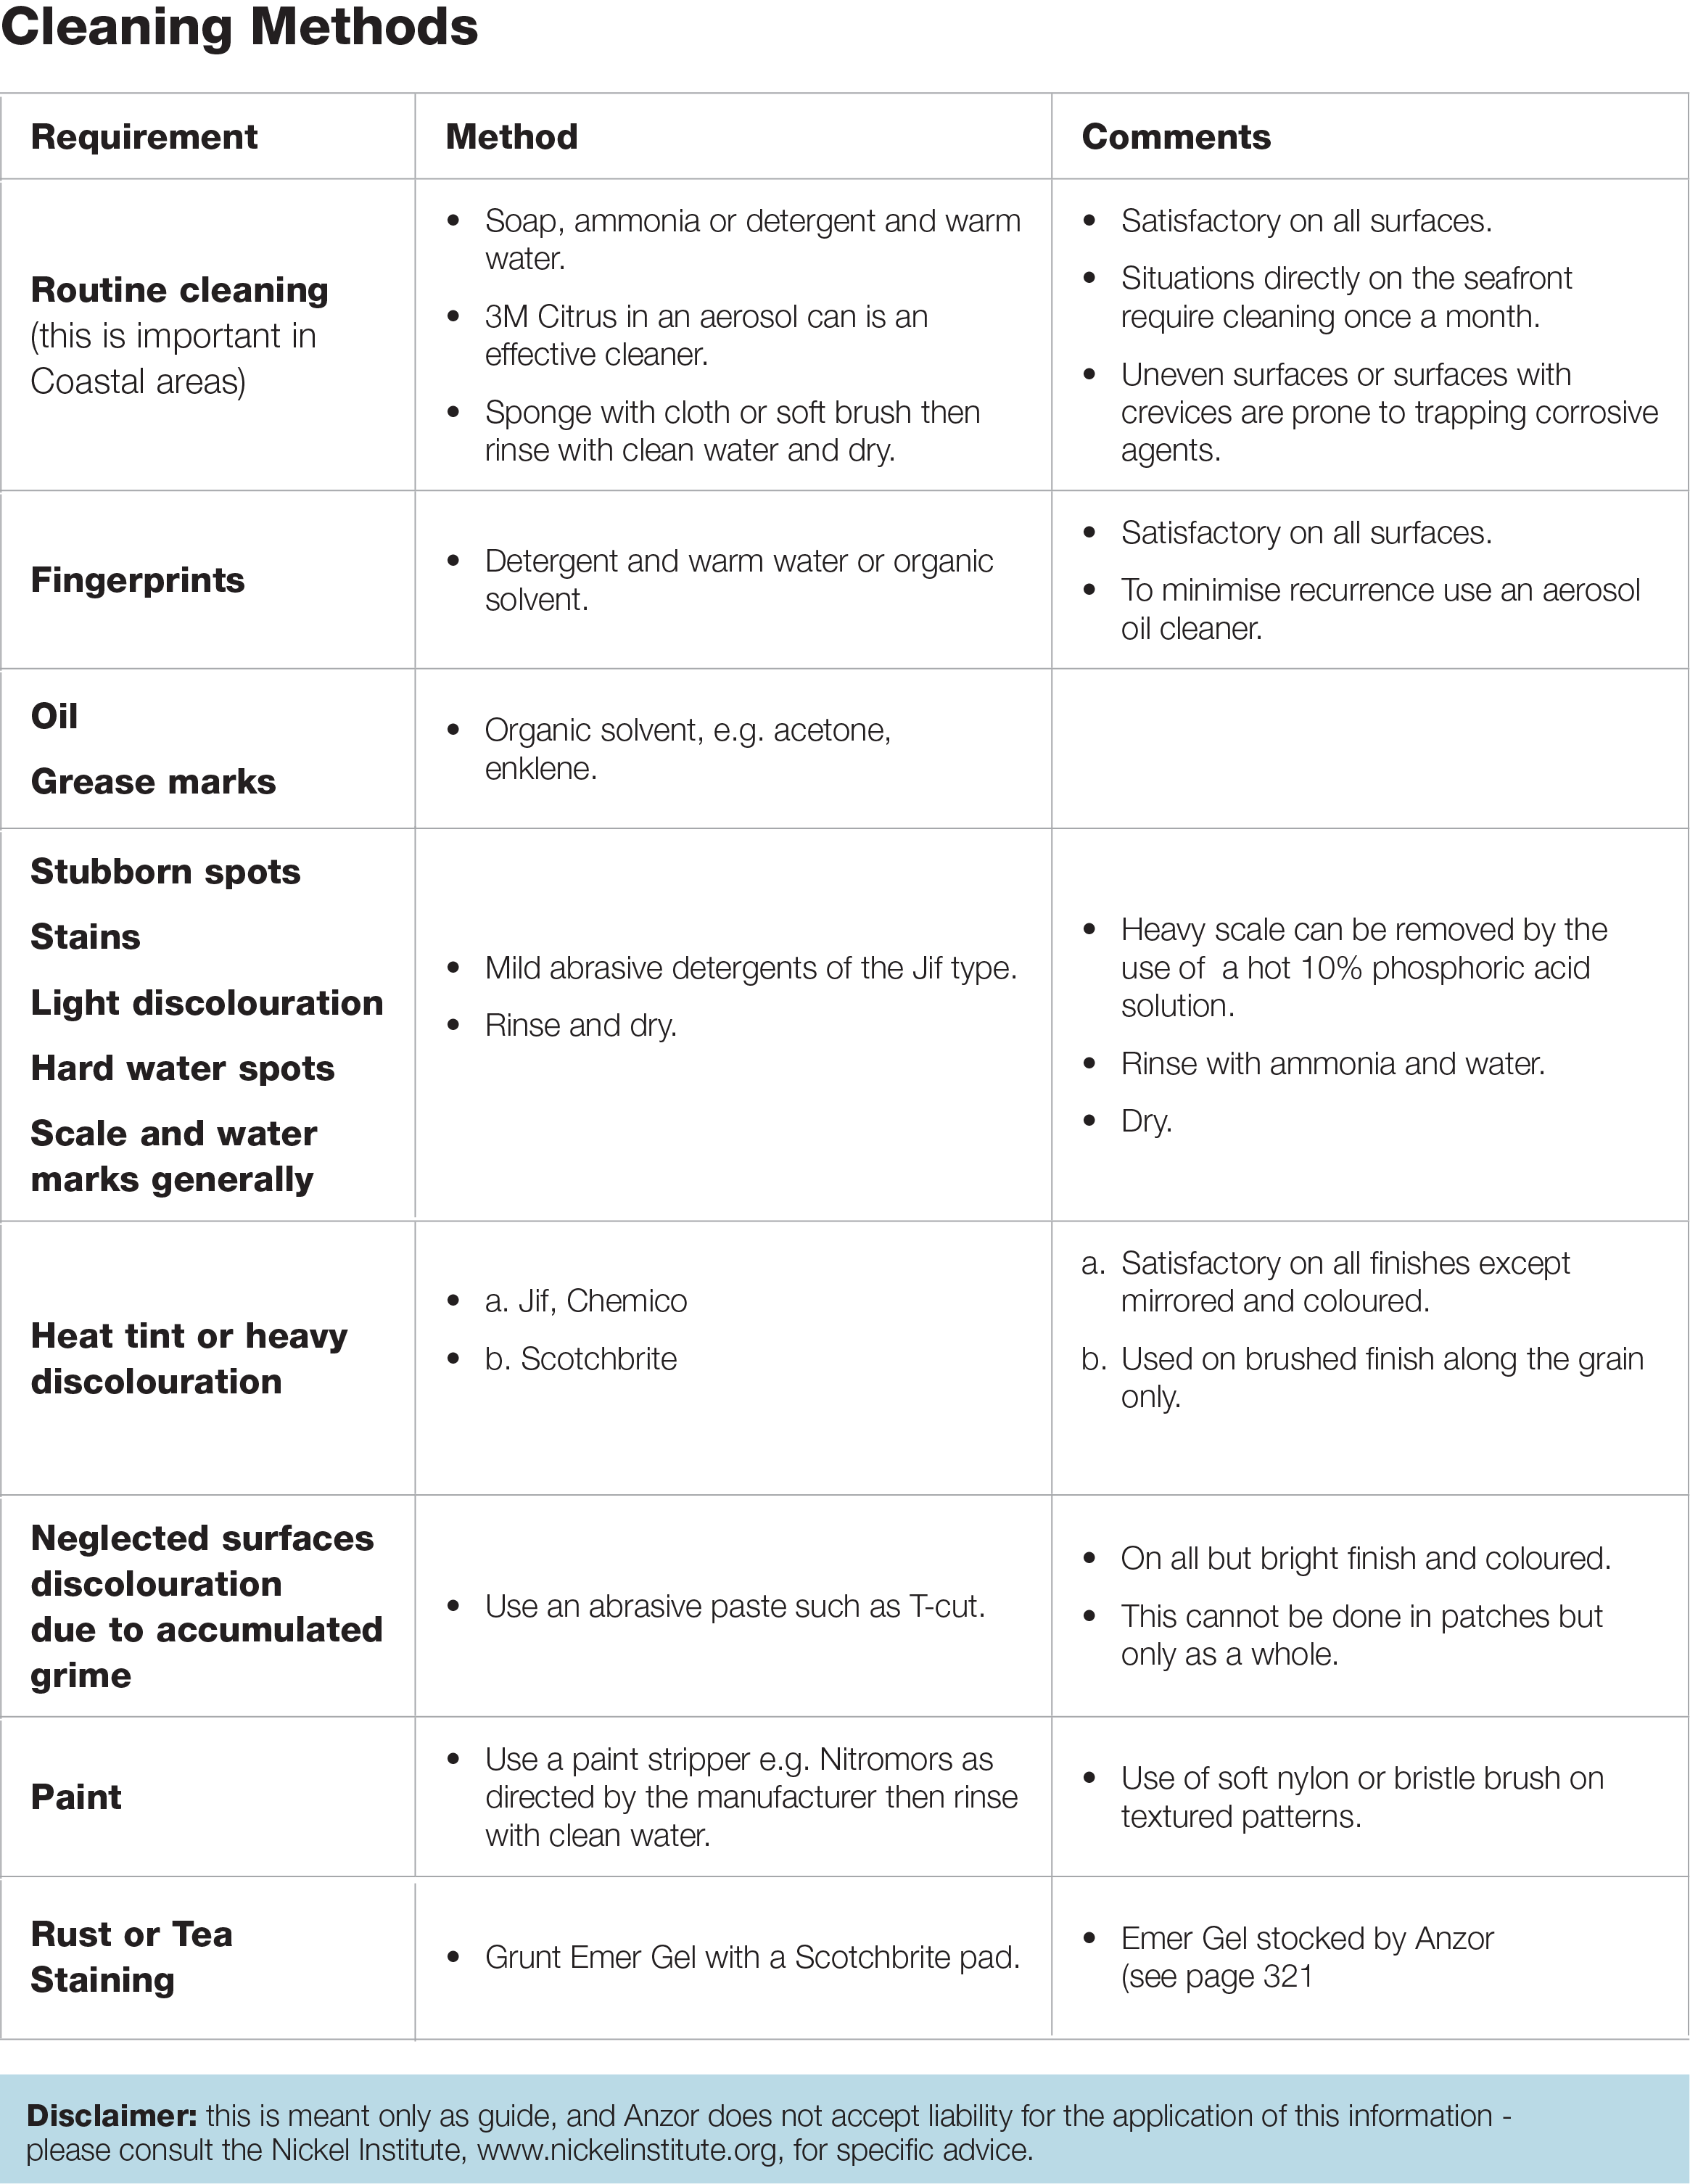 Cleaning Methods Guidelines